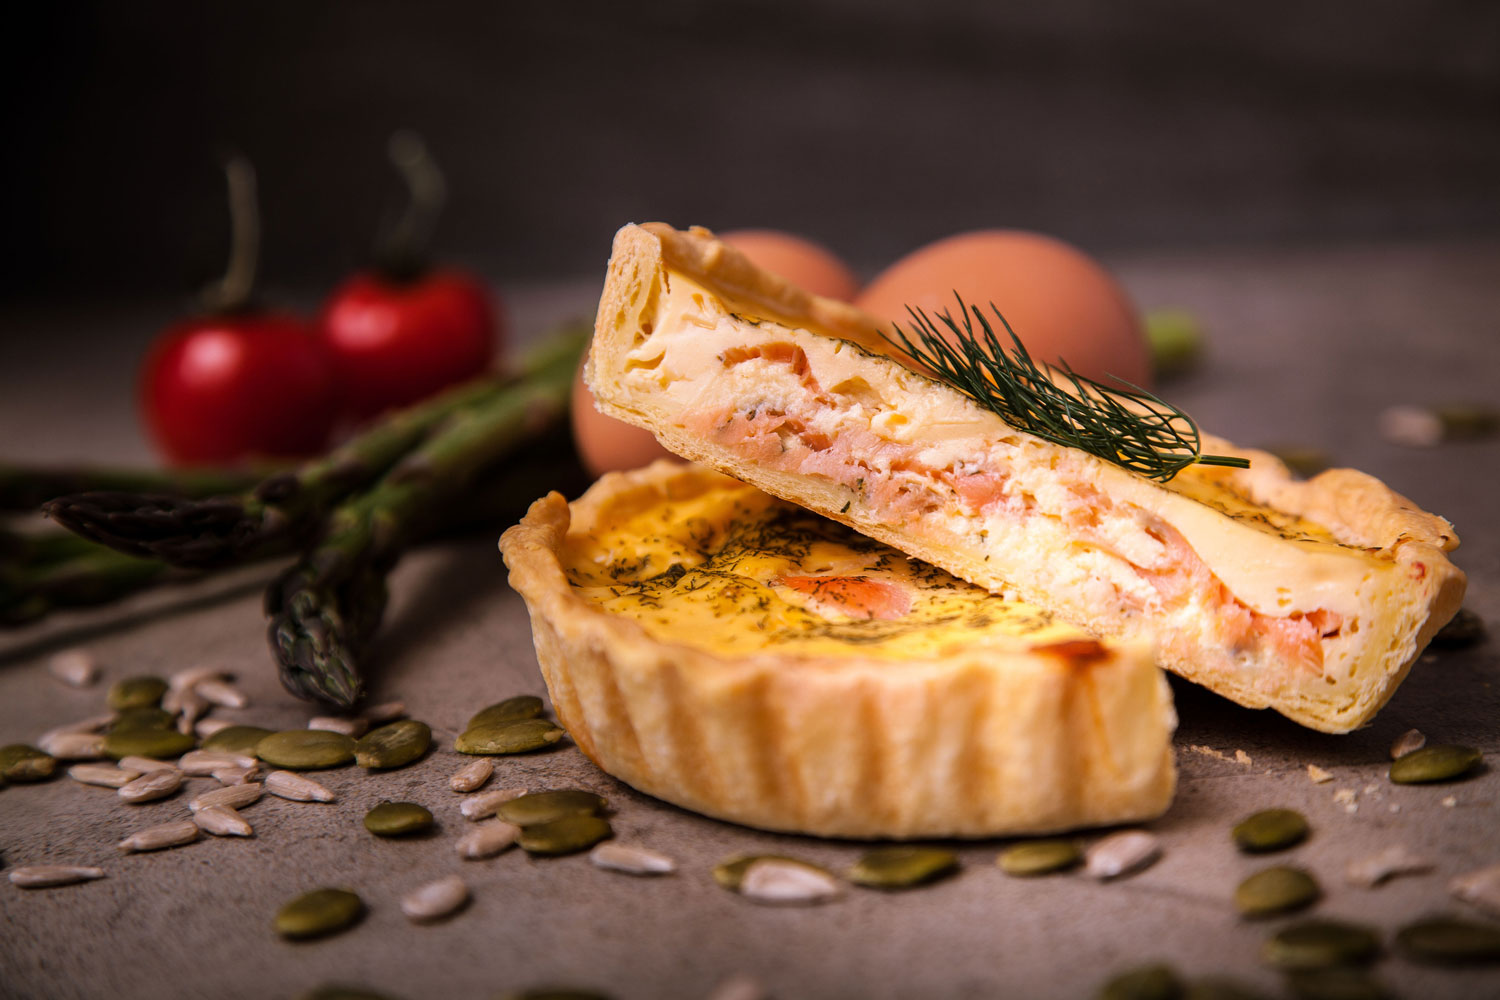 What Can I Substitute For Milk In Quiche?